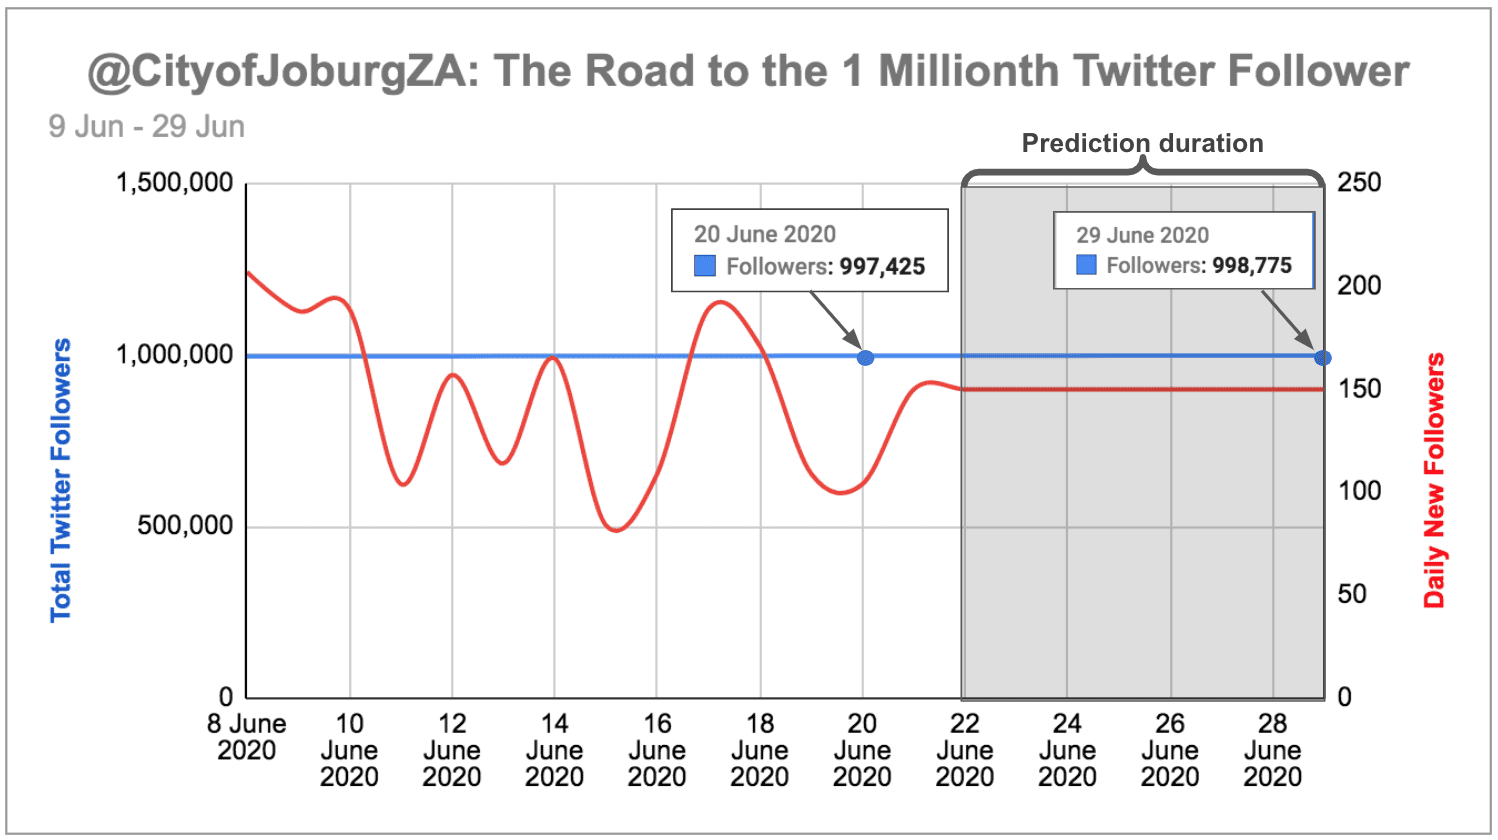 eNitiate | Historical Data | City of Joburg | One Millionth Twitter Follower Tracker | 9-29 June 2020